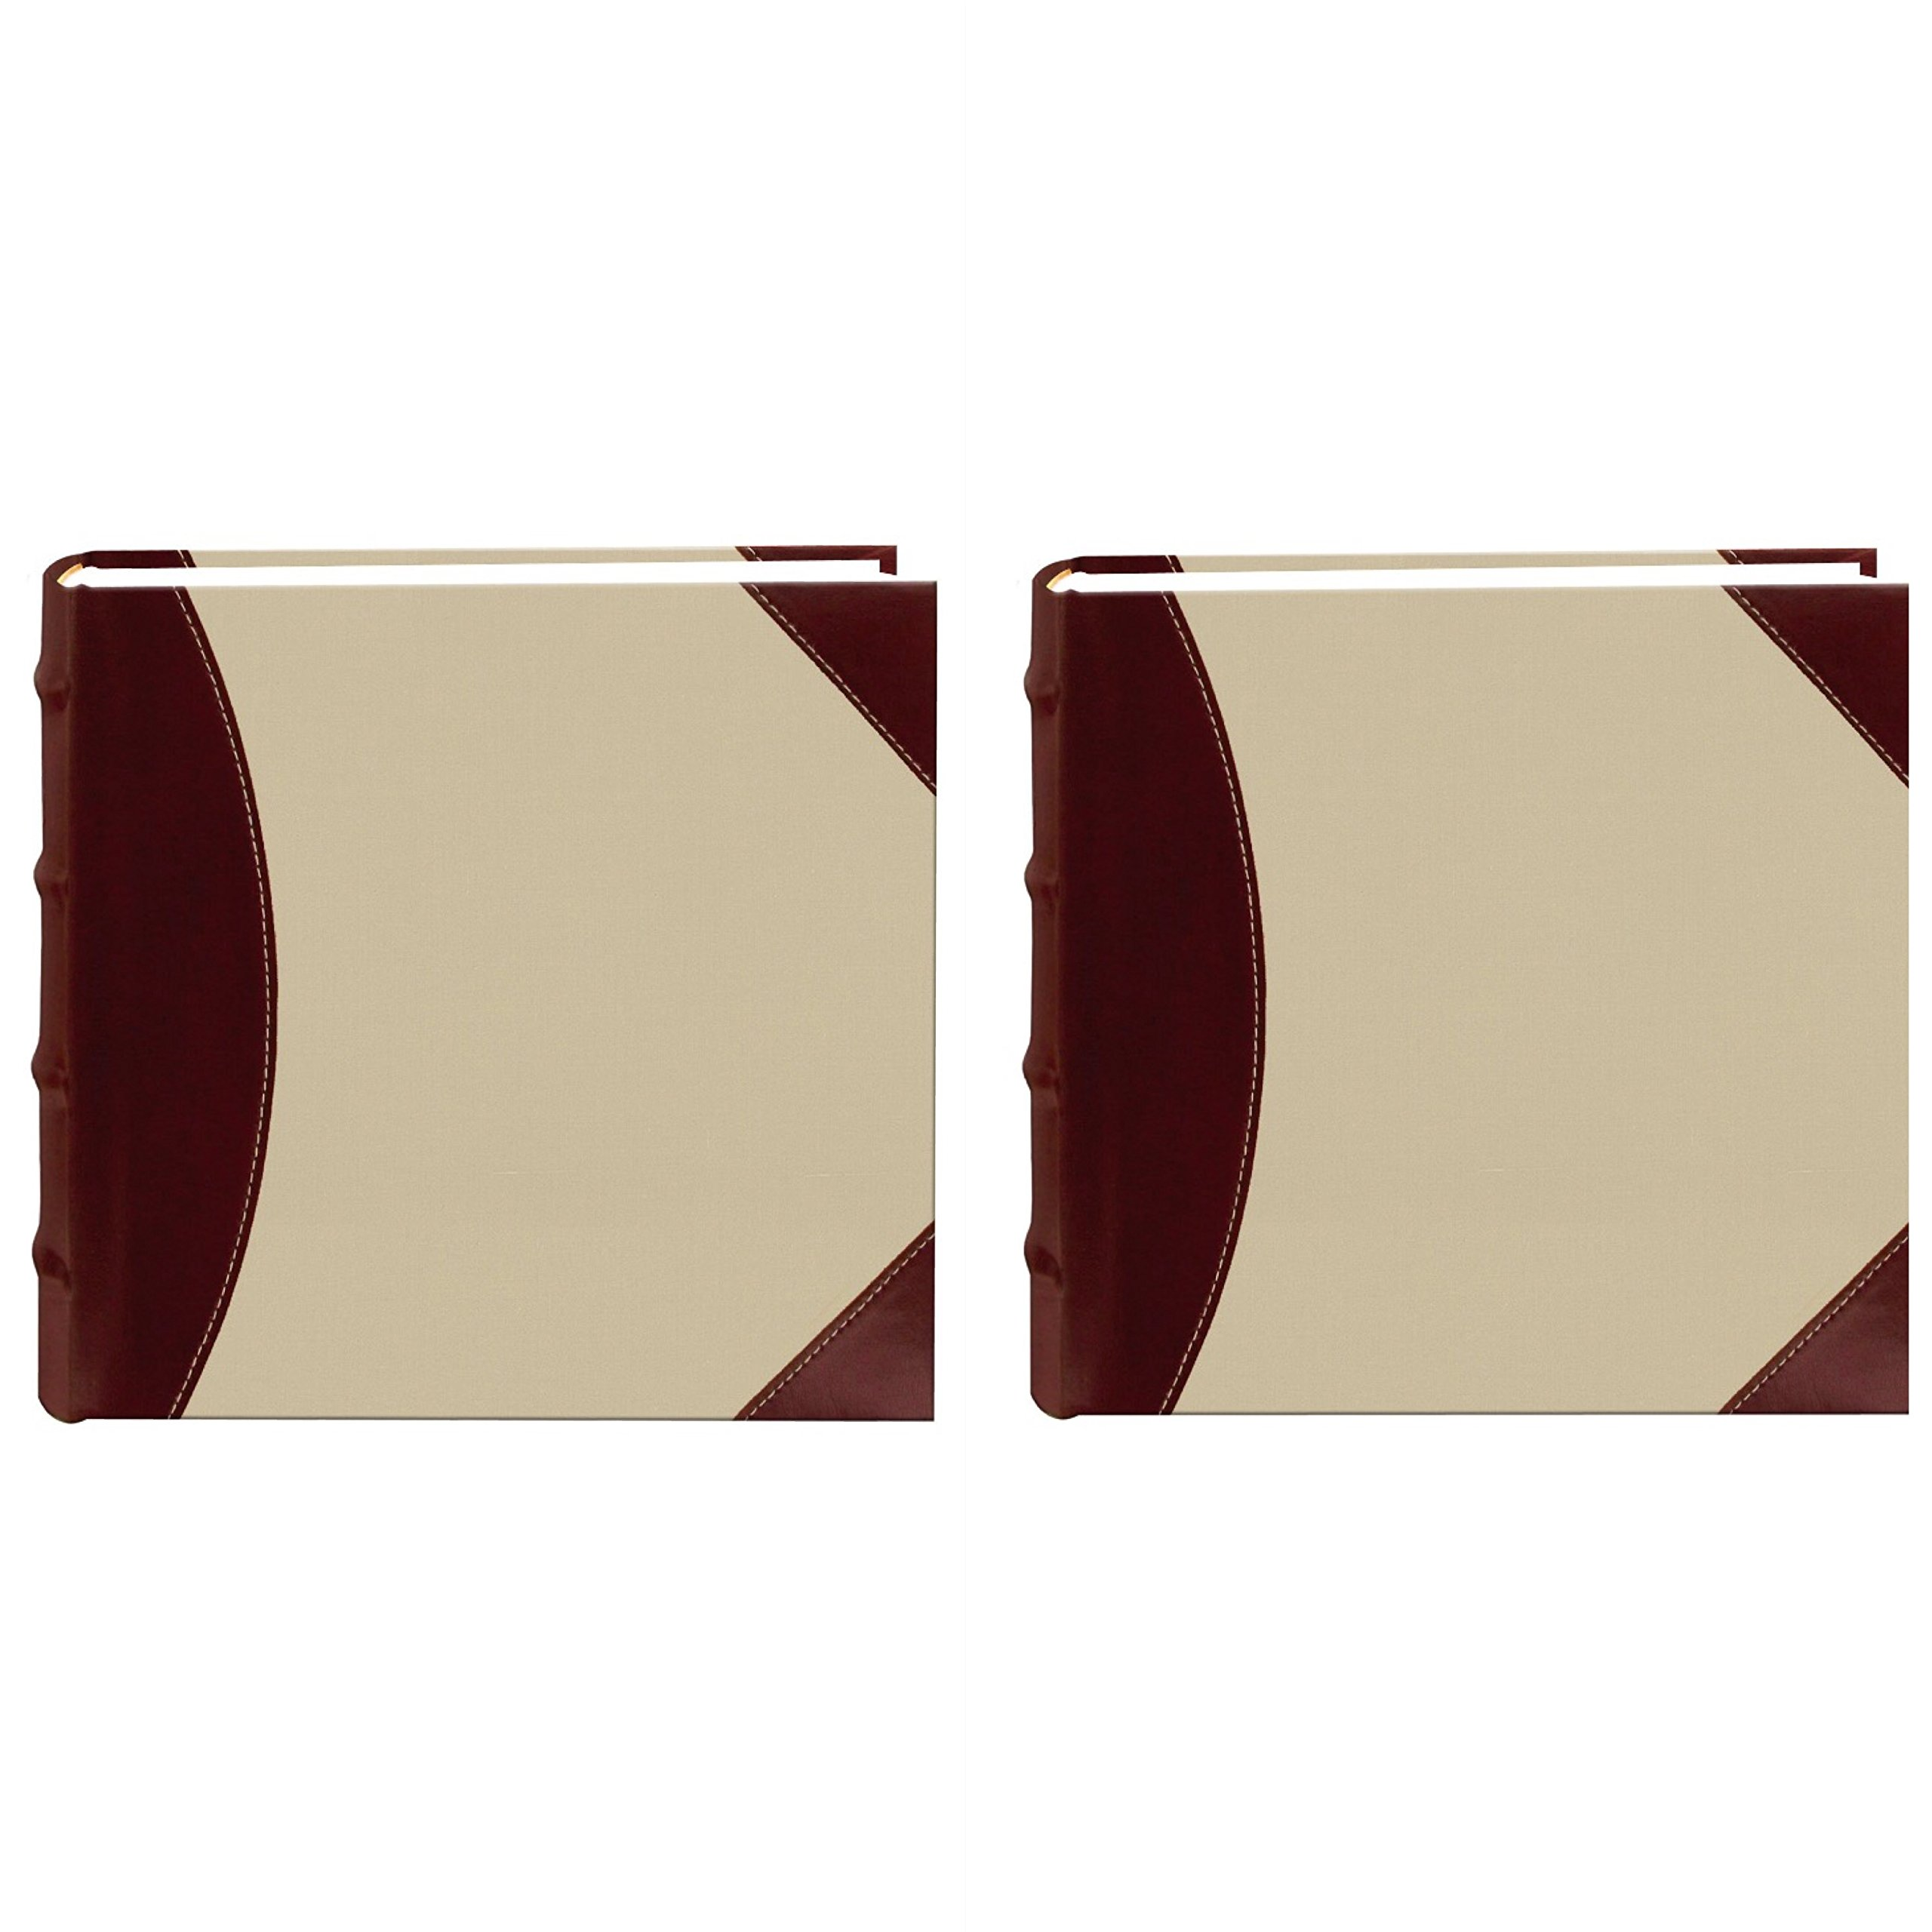 Pioneer Photo Albums 639300 Fabric/Leatherette 300 Photo Album 4X6 2-UP Beige Brown (2)